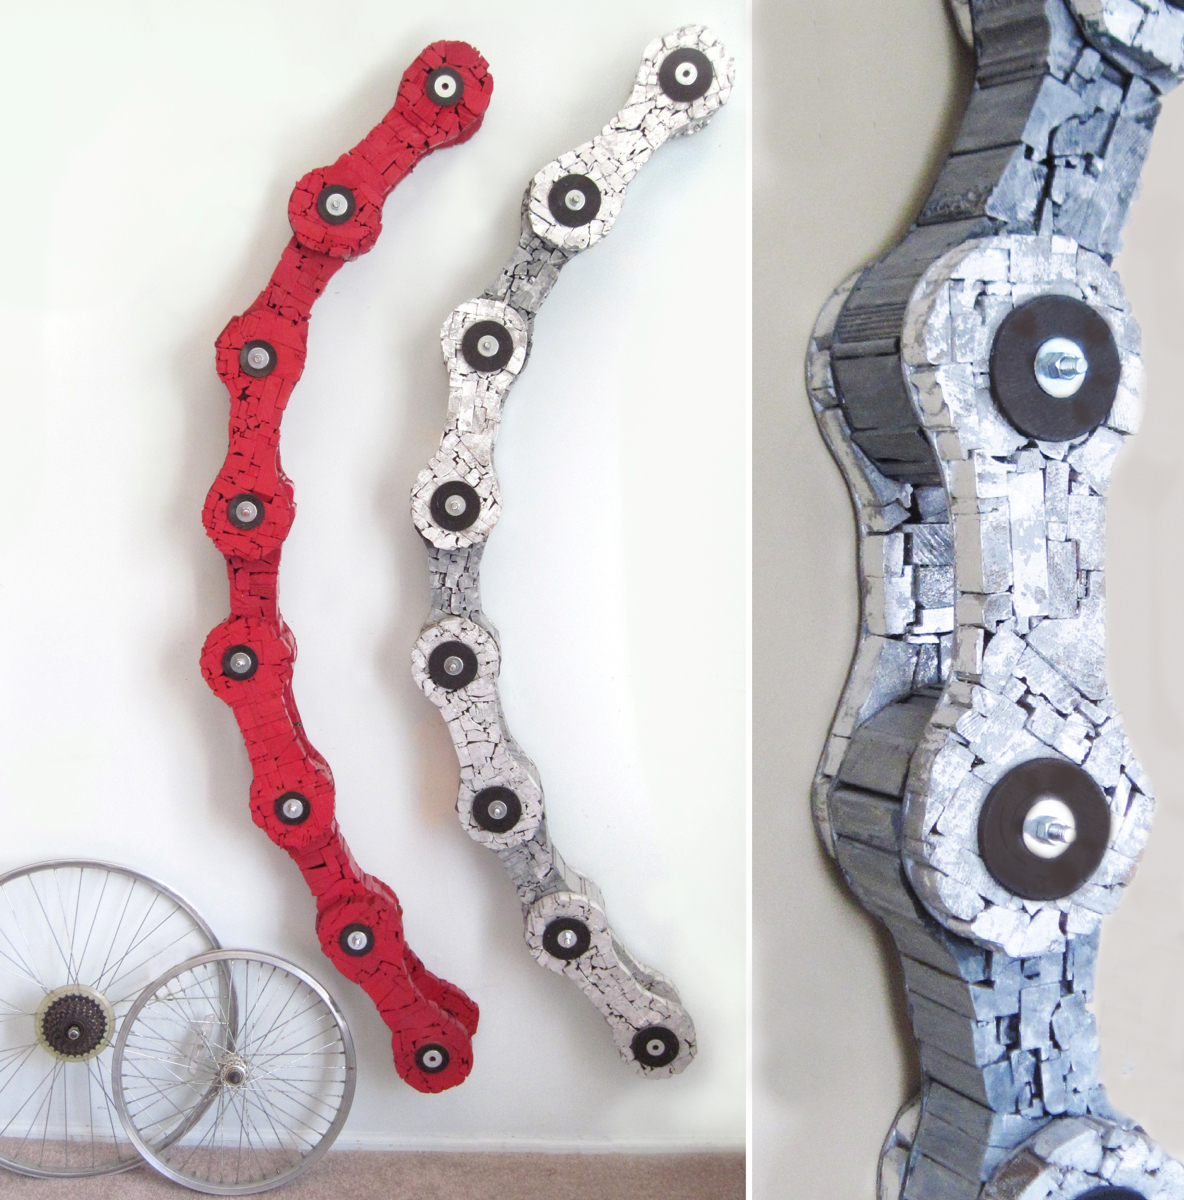 Red Bike Chain and Silver Bike Chain (large view)